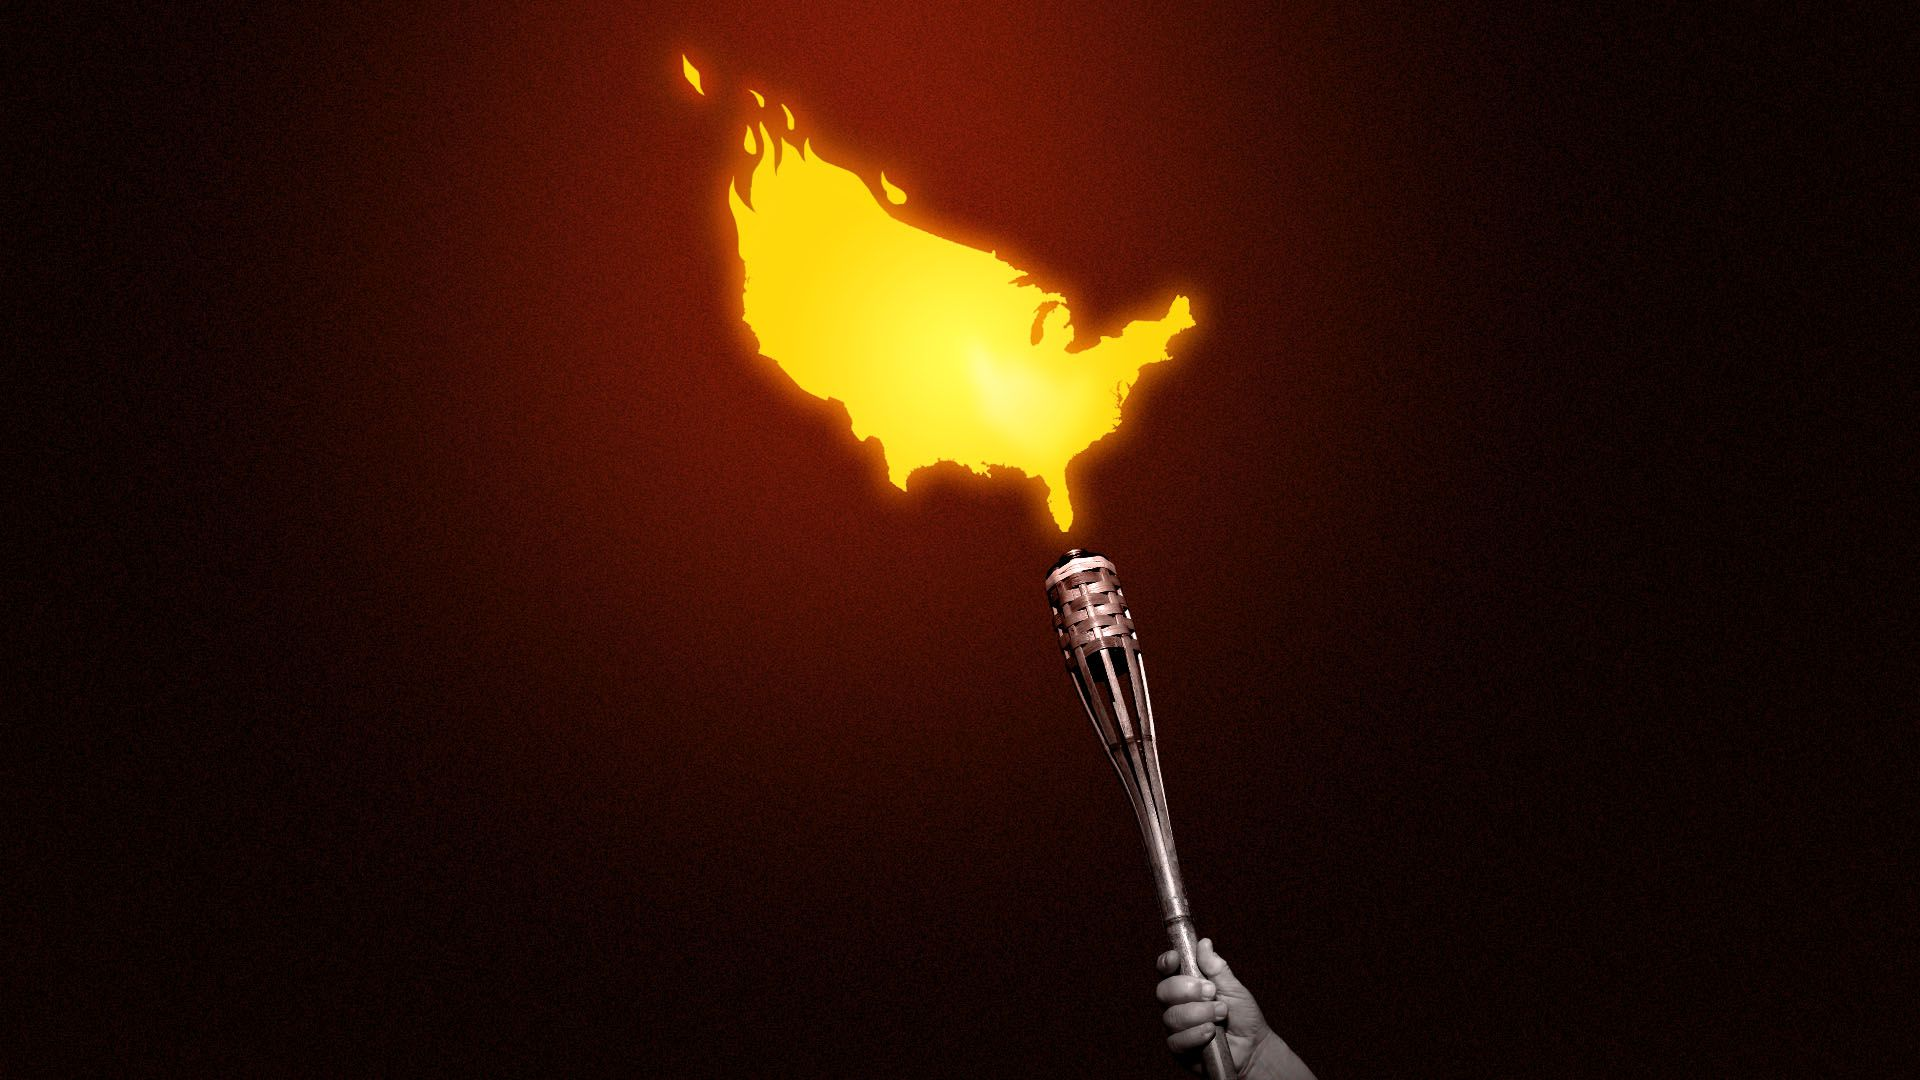 Illustration of a hand holding a tiki torch with a flame in the shape of the United States